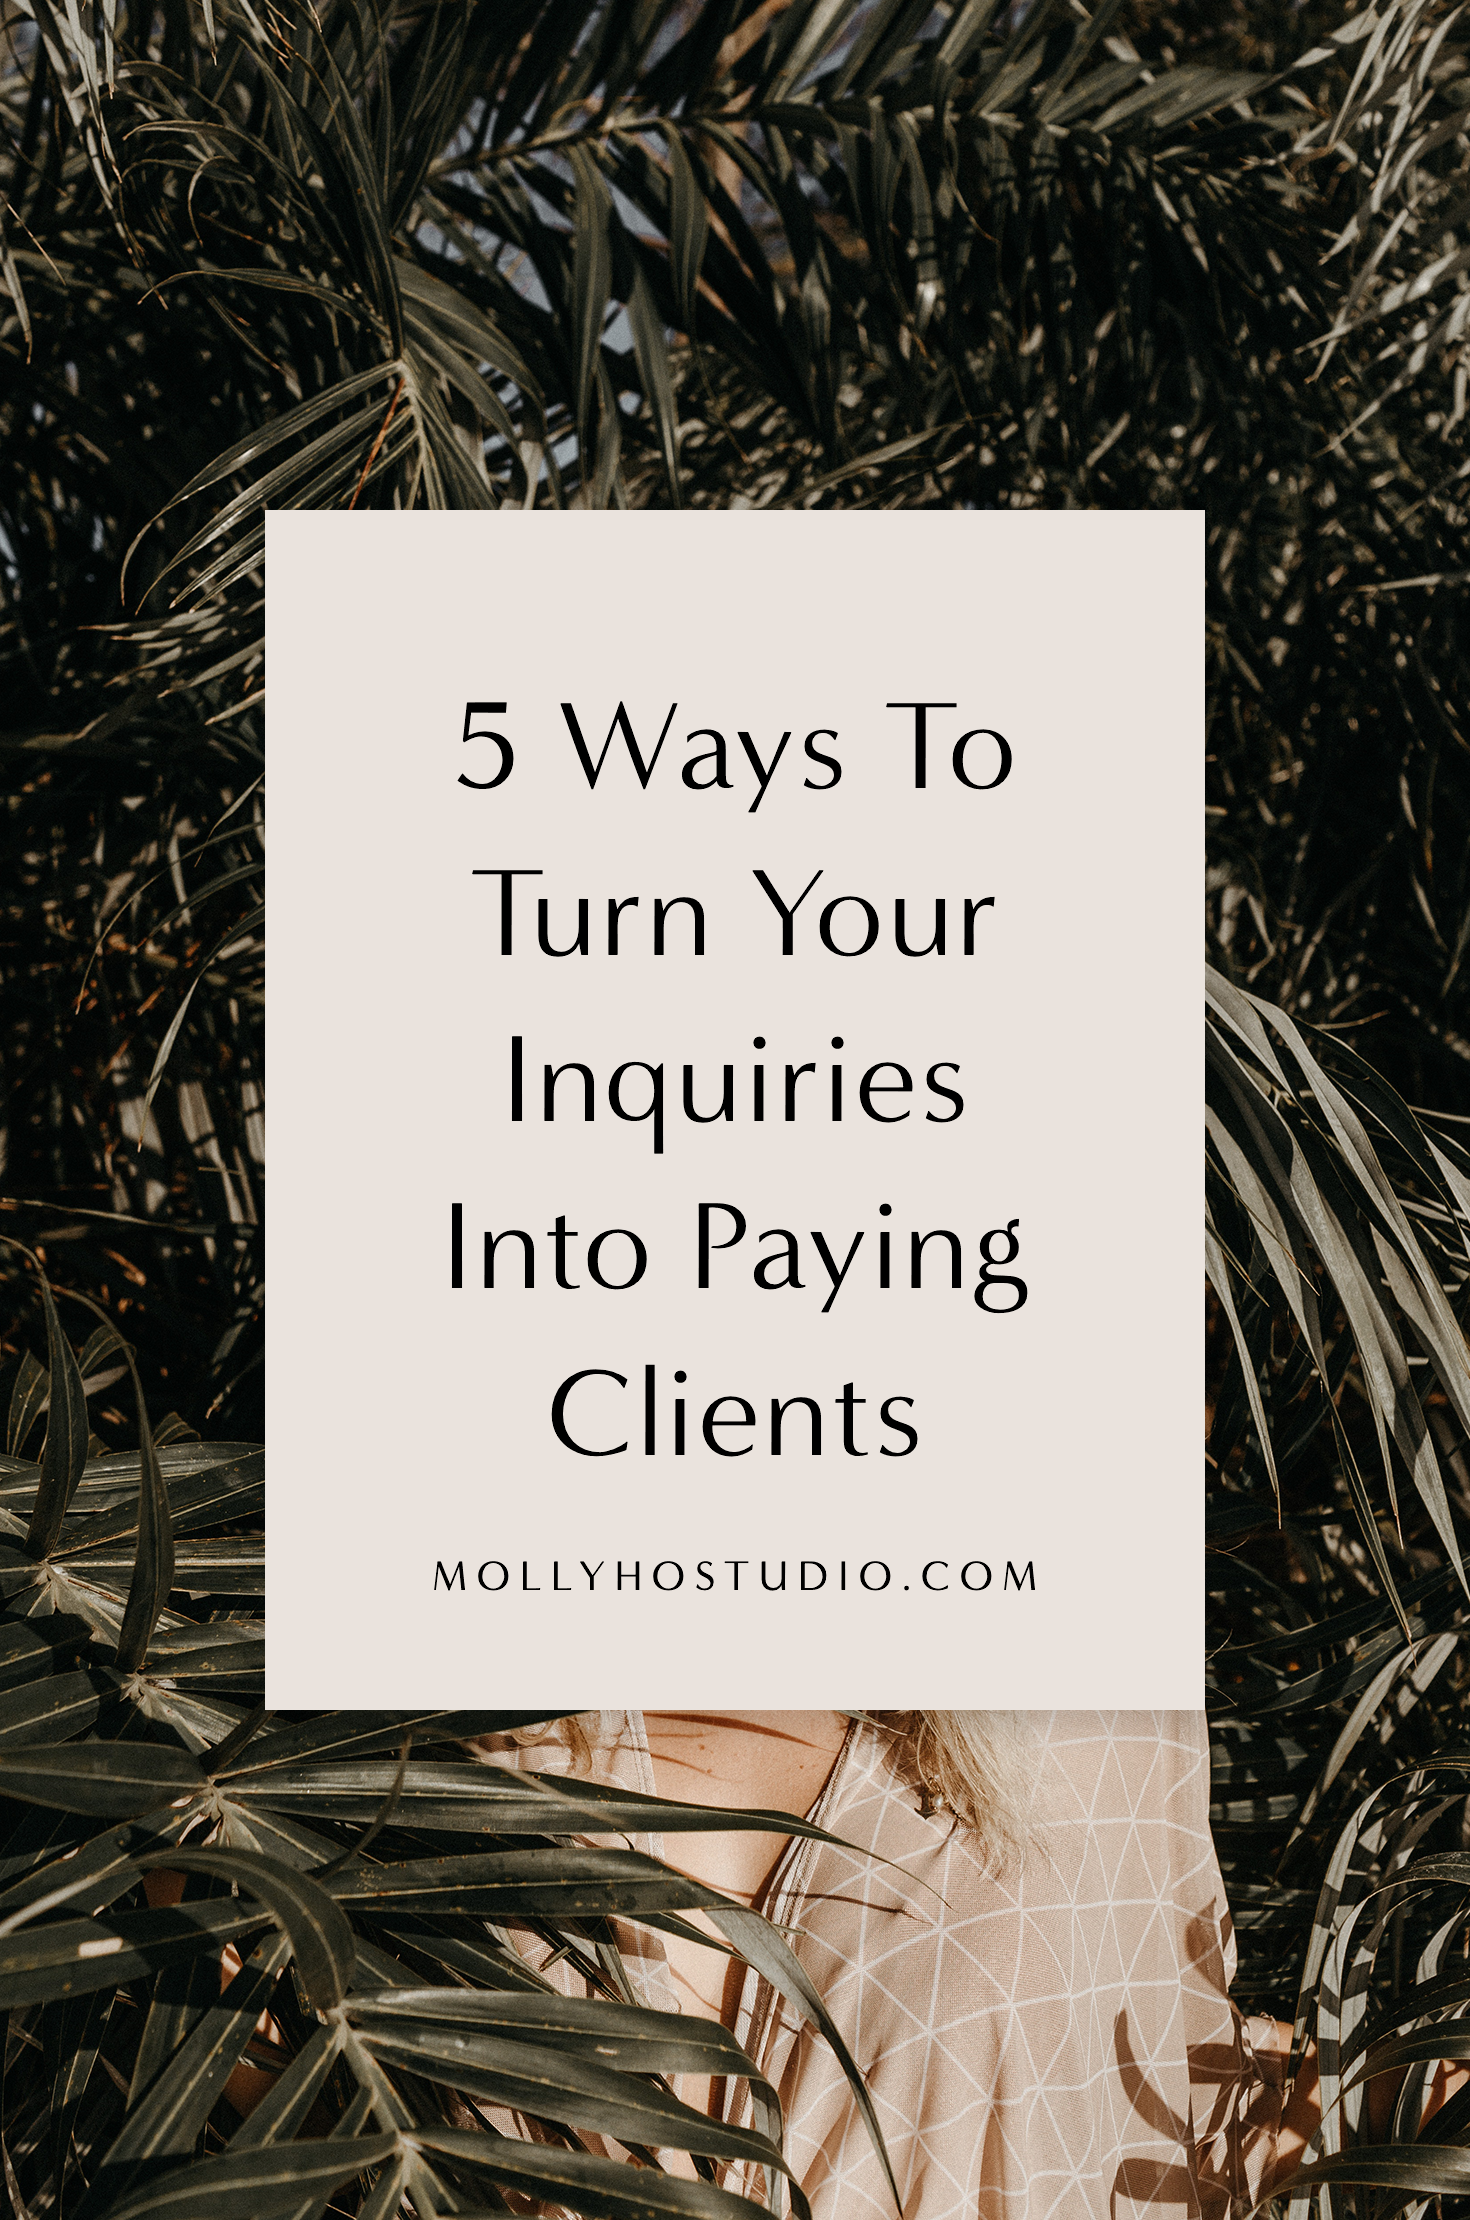 5 Ways To Turn Your Inquiries Into Paying Clients | How To Turn Your Inquiries Into Clients | How To Grow A Photography Business | How To Build Trust With The Client | How To Book More Photography Clients | Client Experience | Branding and Marketing Tips For Photographers | Molly Ho Studio